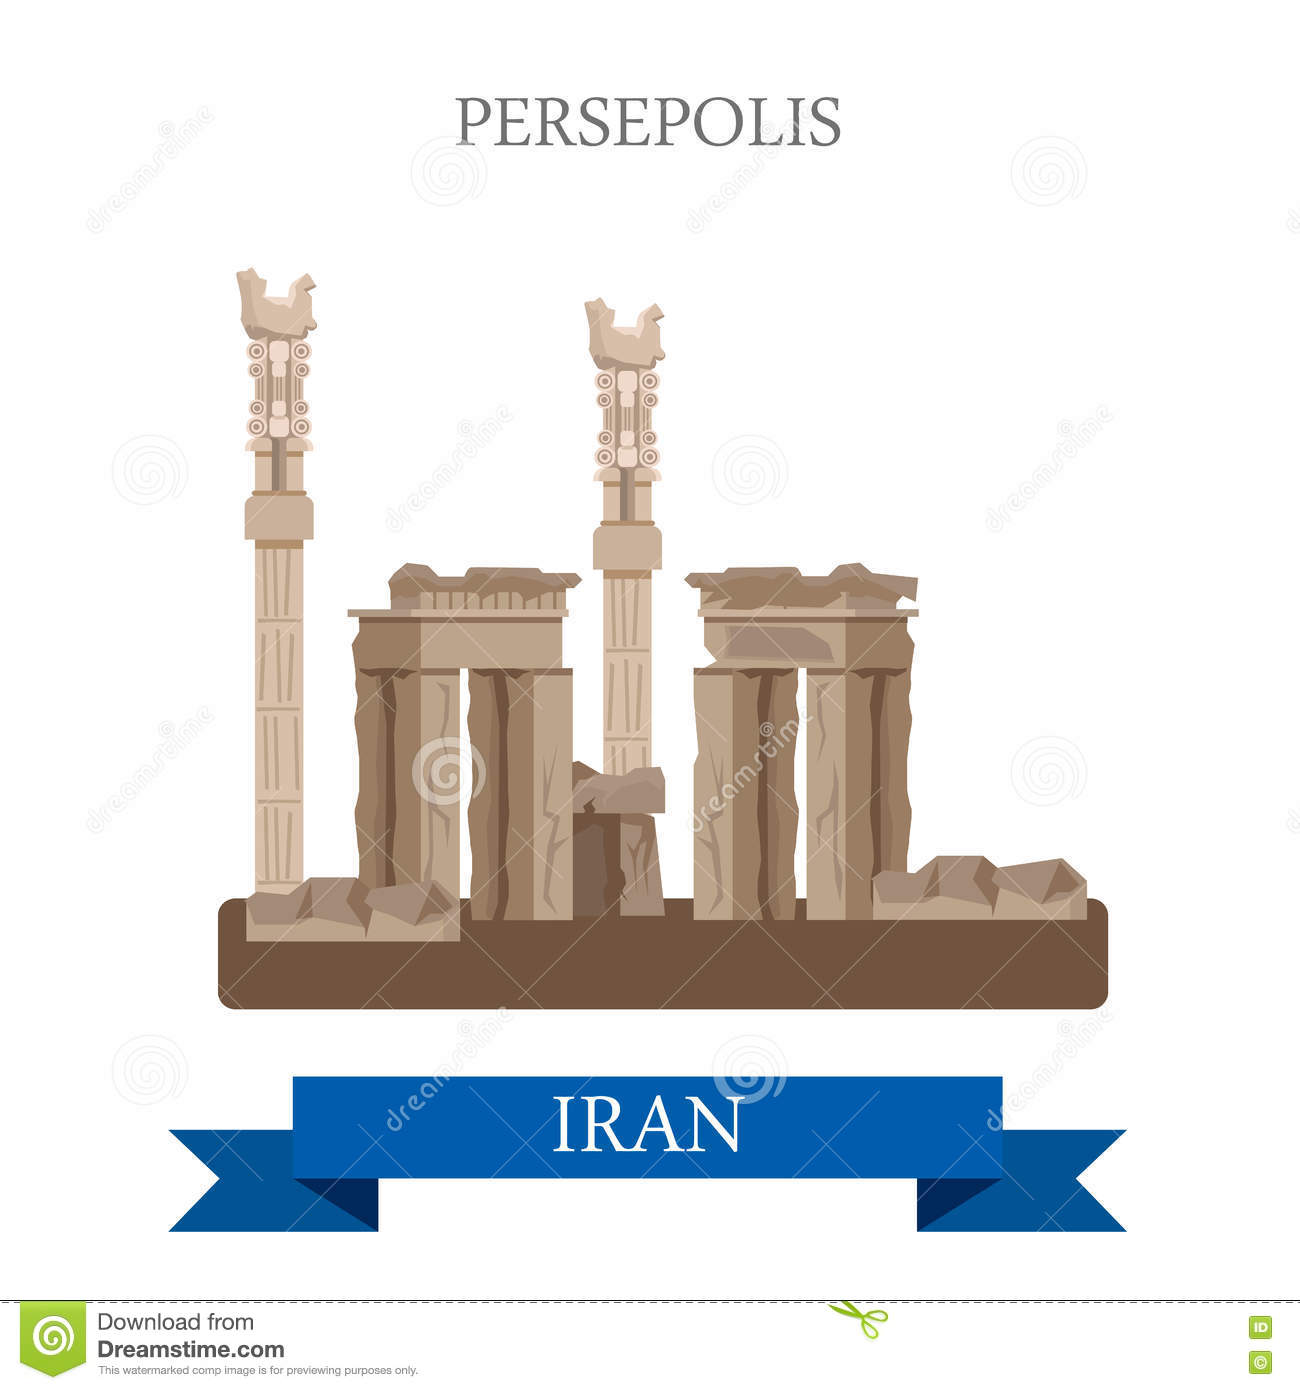 Persepolis in iran vector flat attraction landmarks stock vector persepolis in iran vector flat attraction landmarks buycottarizona Choice Image